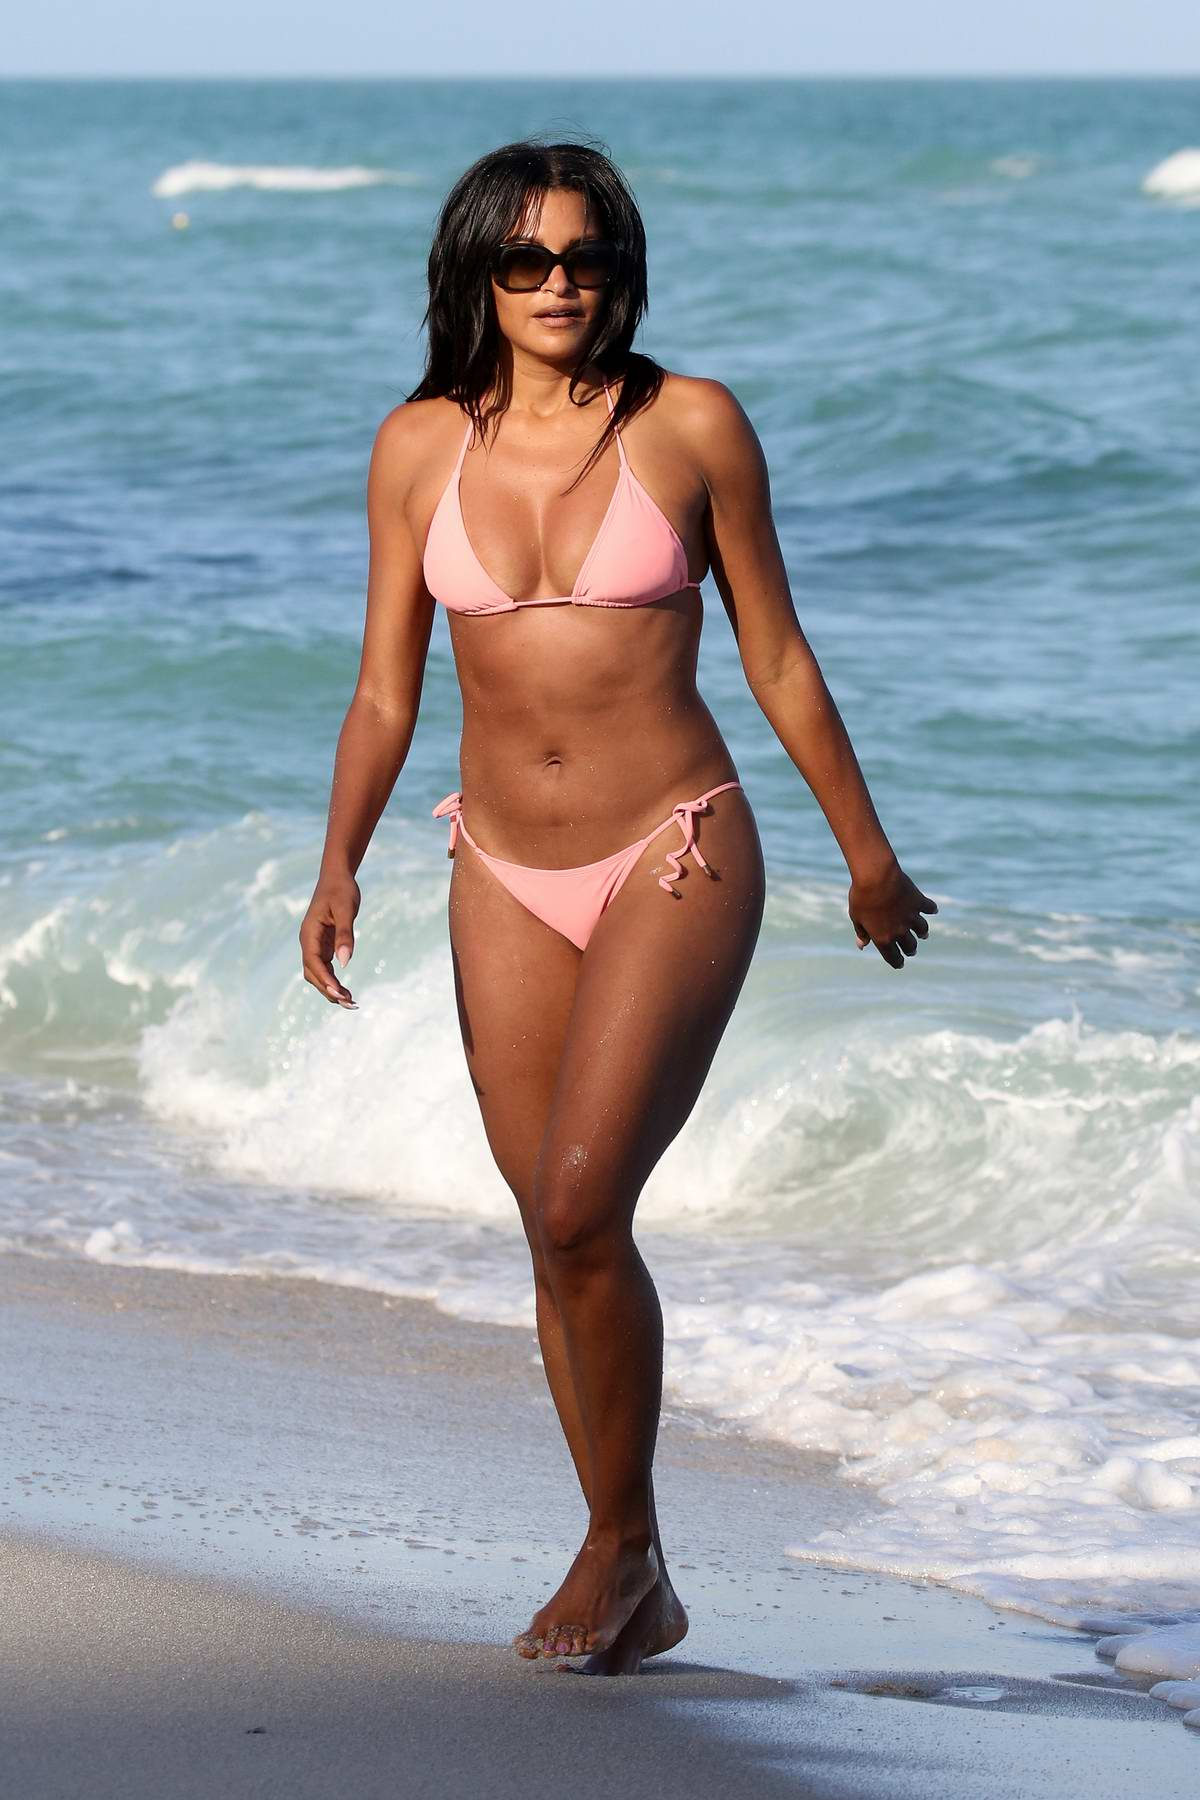 Claudia Jordan wears a pink string bikini while strolling on the beach in Miami, Florida